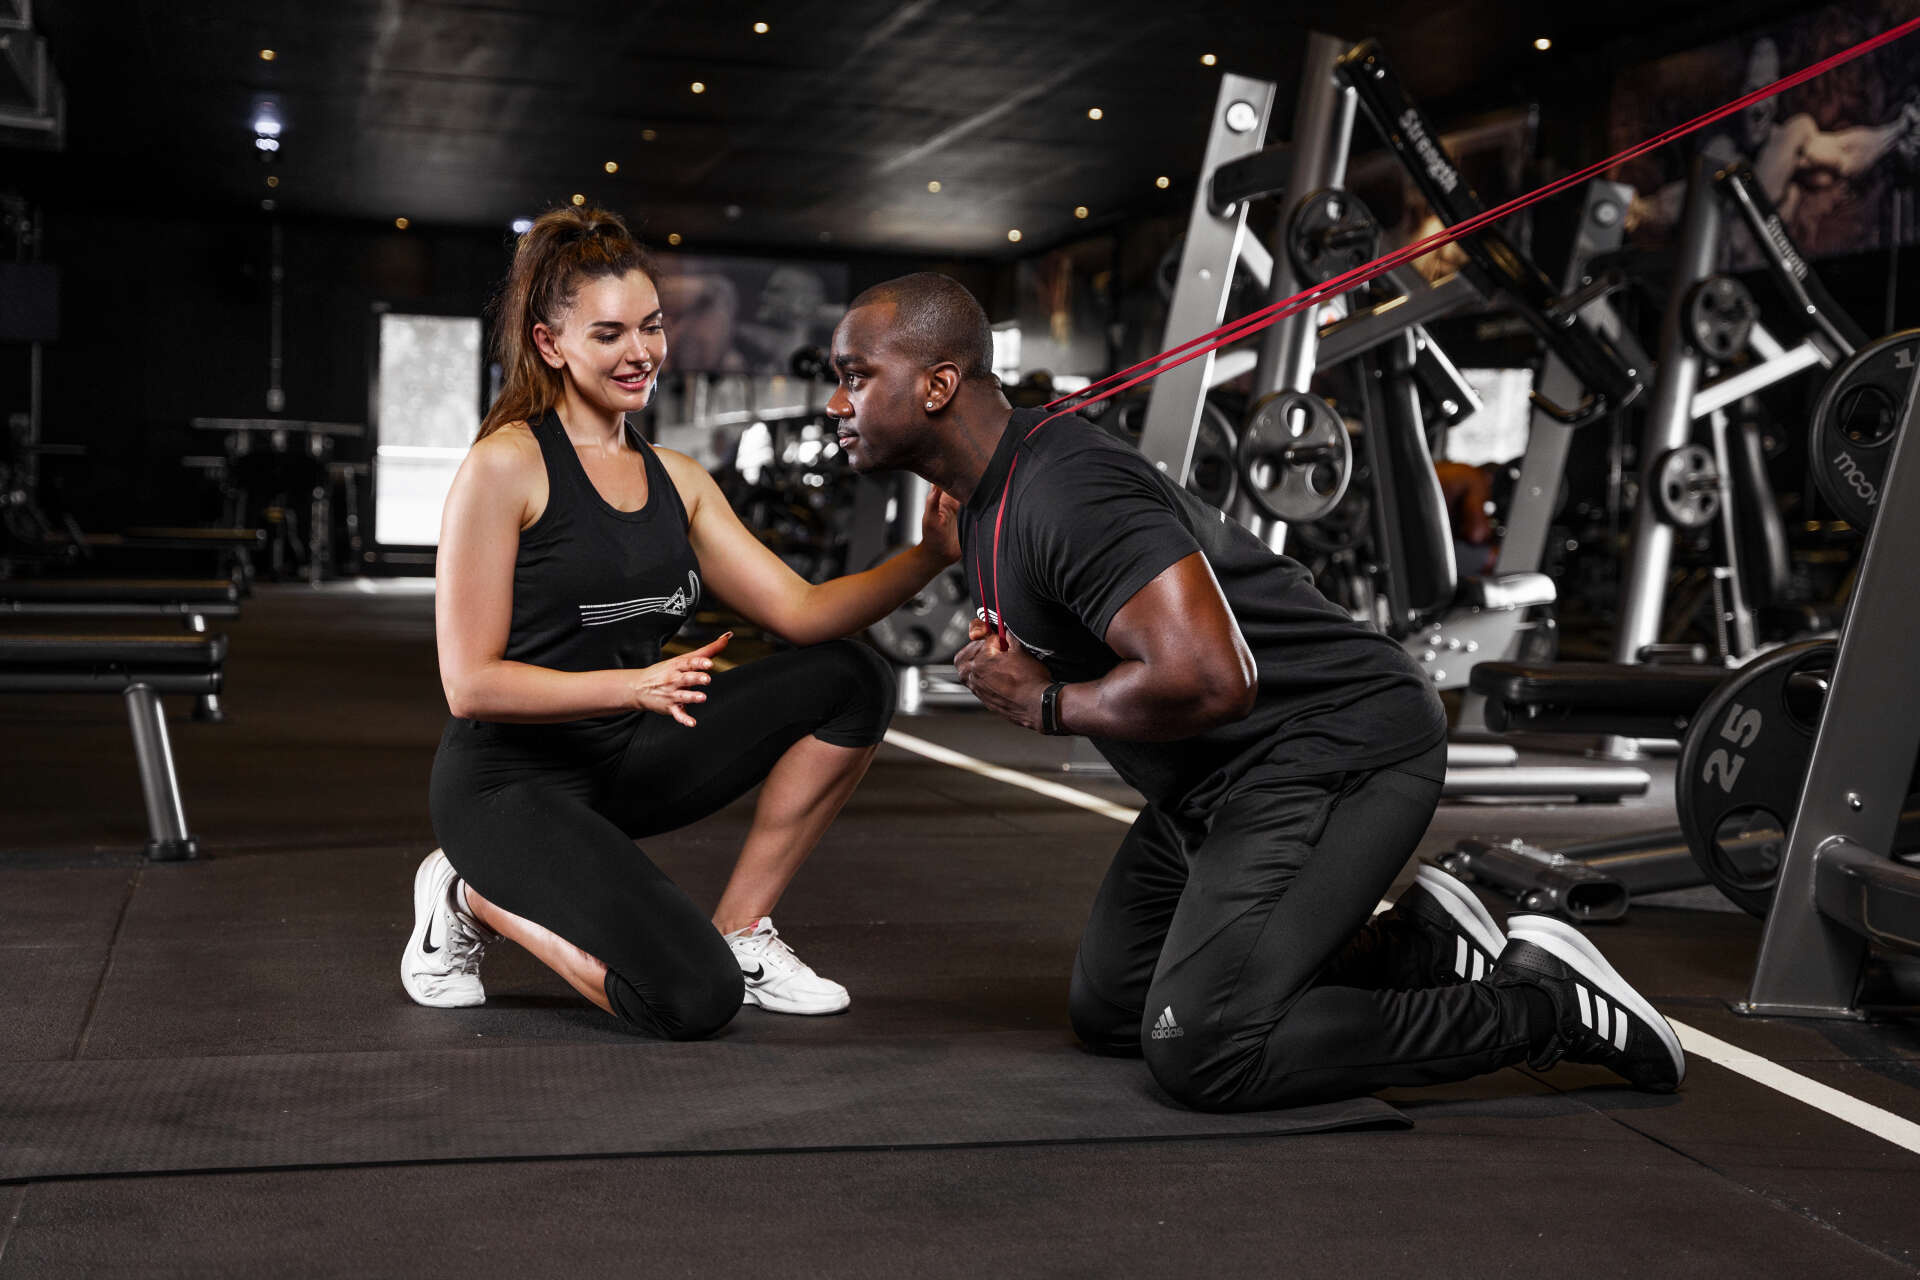 Trifocus Fitness Academy - weights